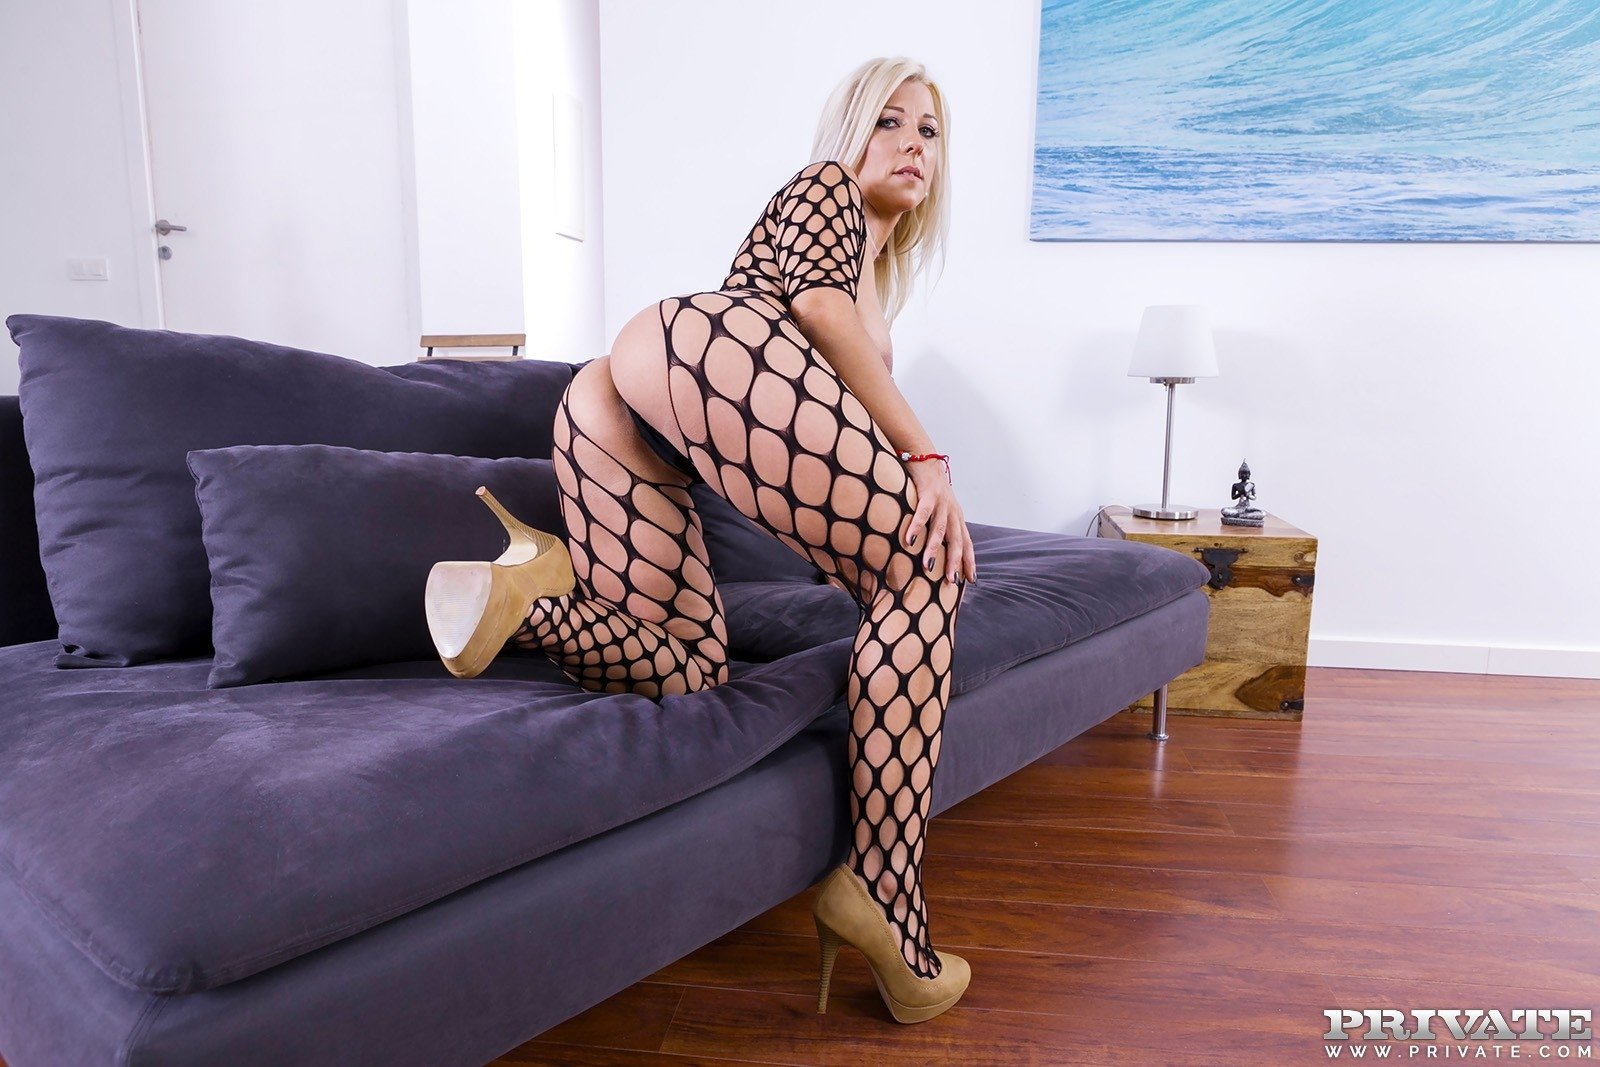 Free streaming cameron cain sex scenes